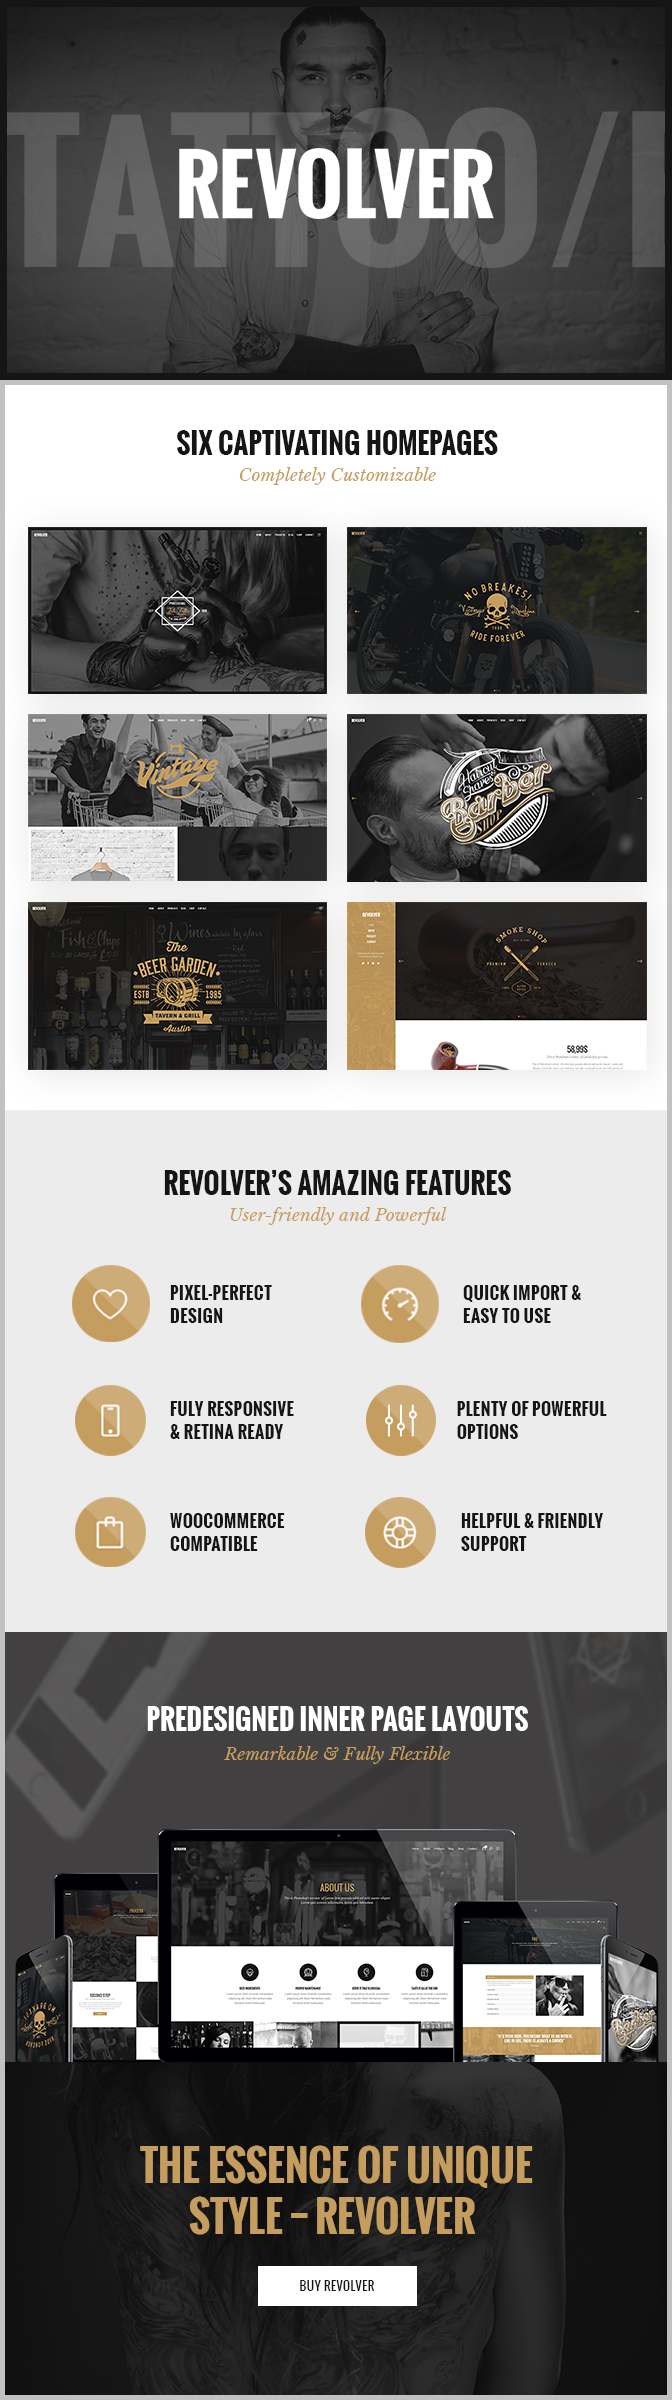 Revolver - Tattoo Studio and Barbershop Theme - 1